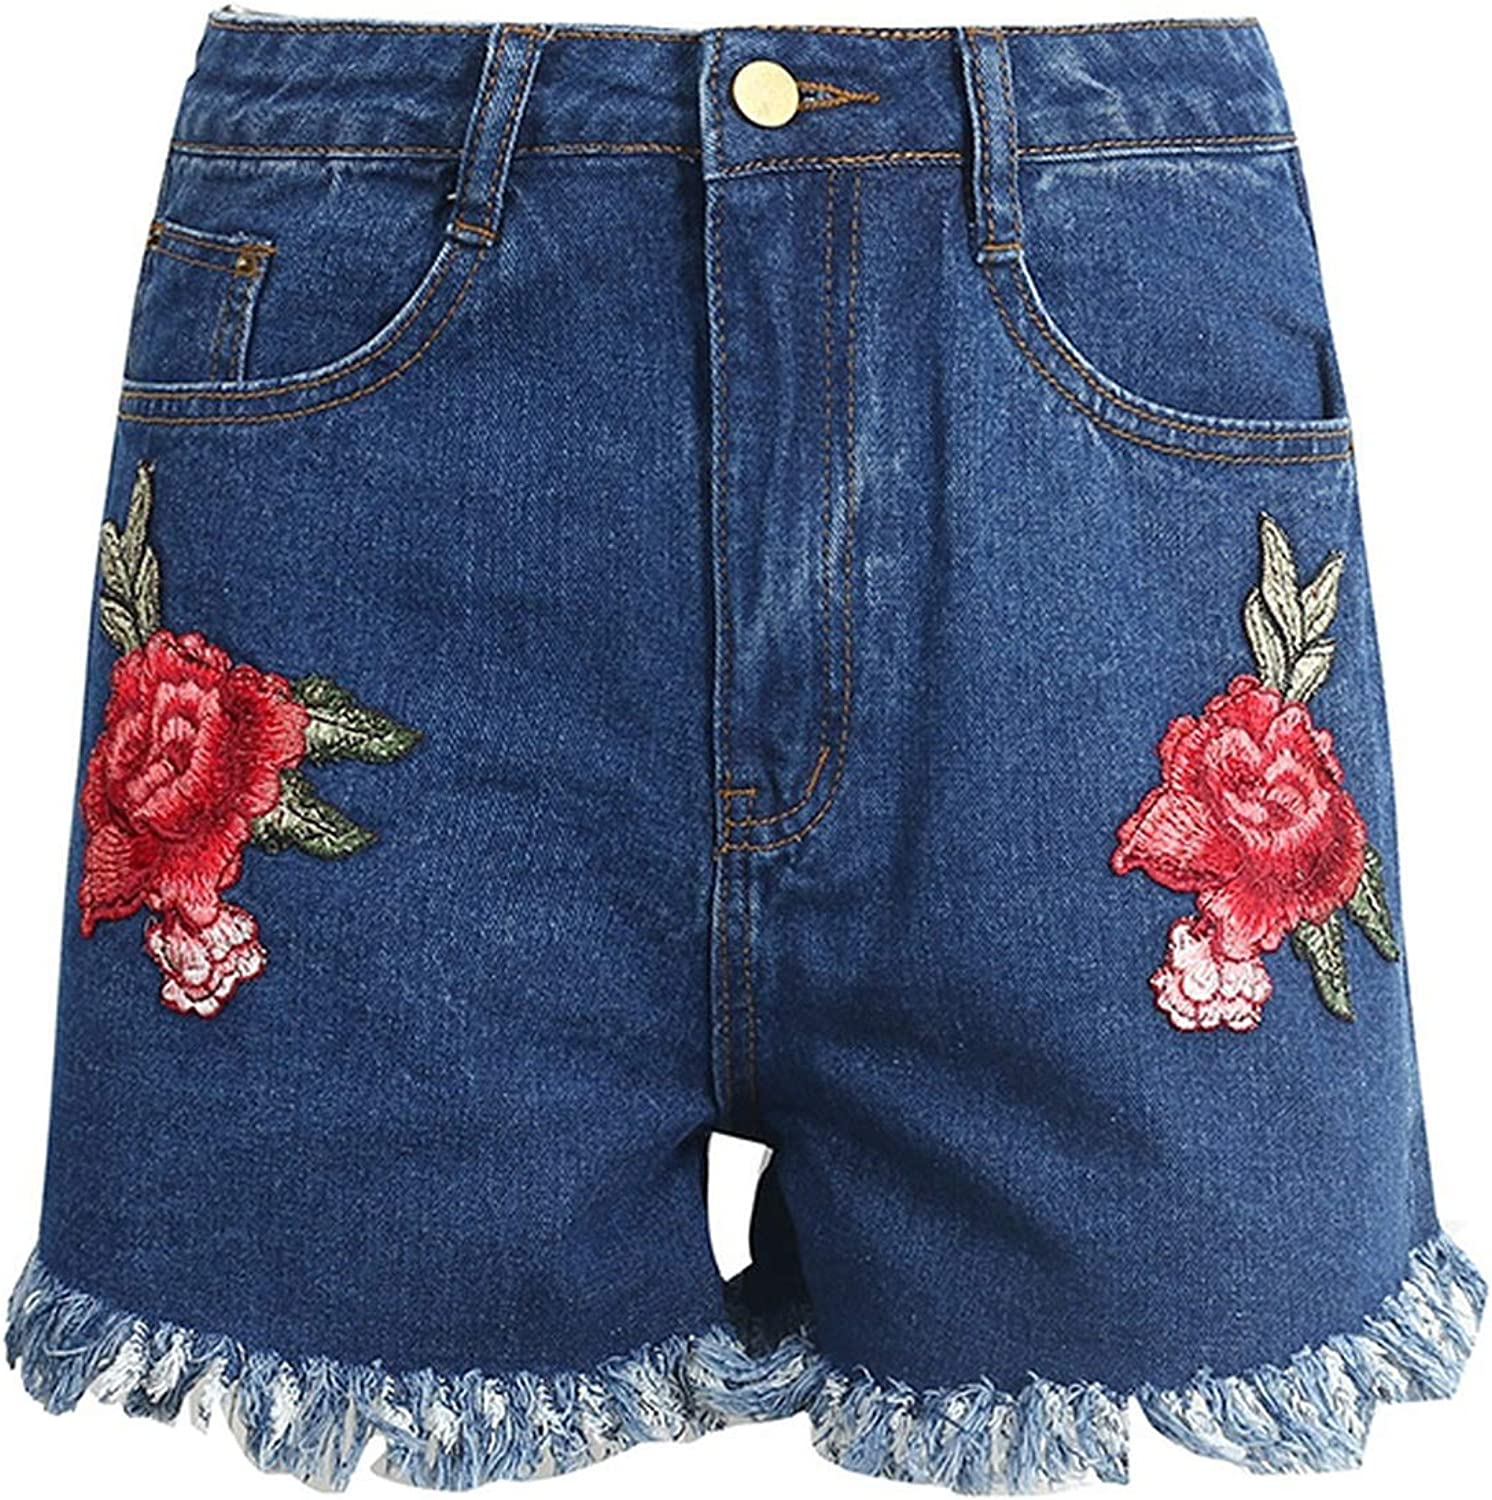 Show-Show-Fashion-pants Flower Embroidery high Waist Denim Shorts Women Casual Zipper tas,Blue,S